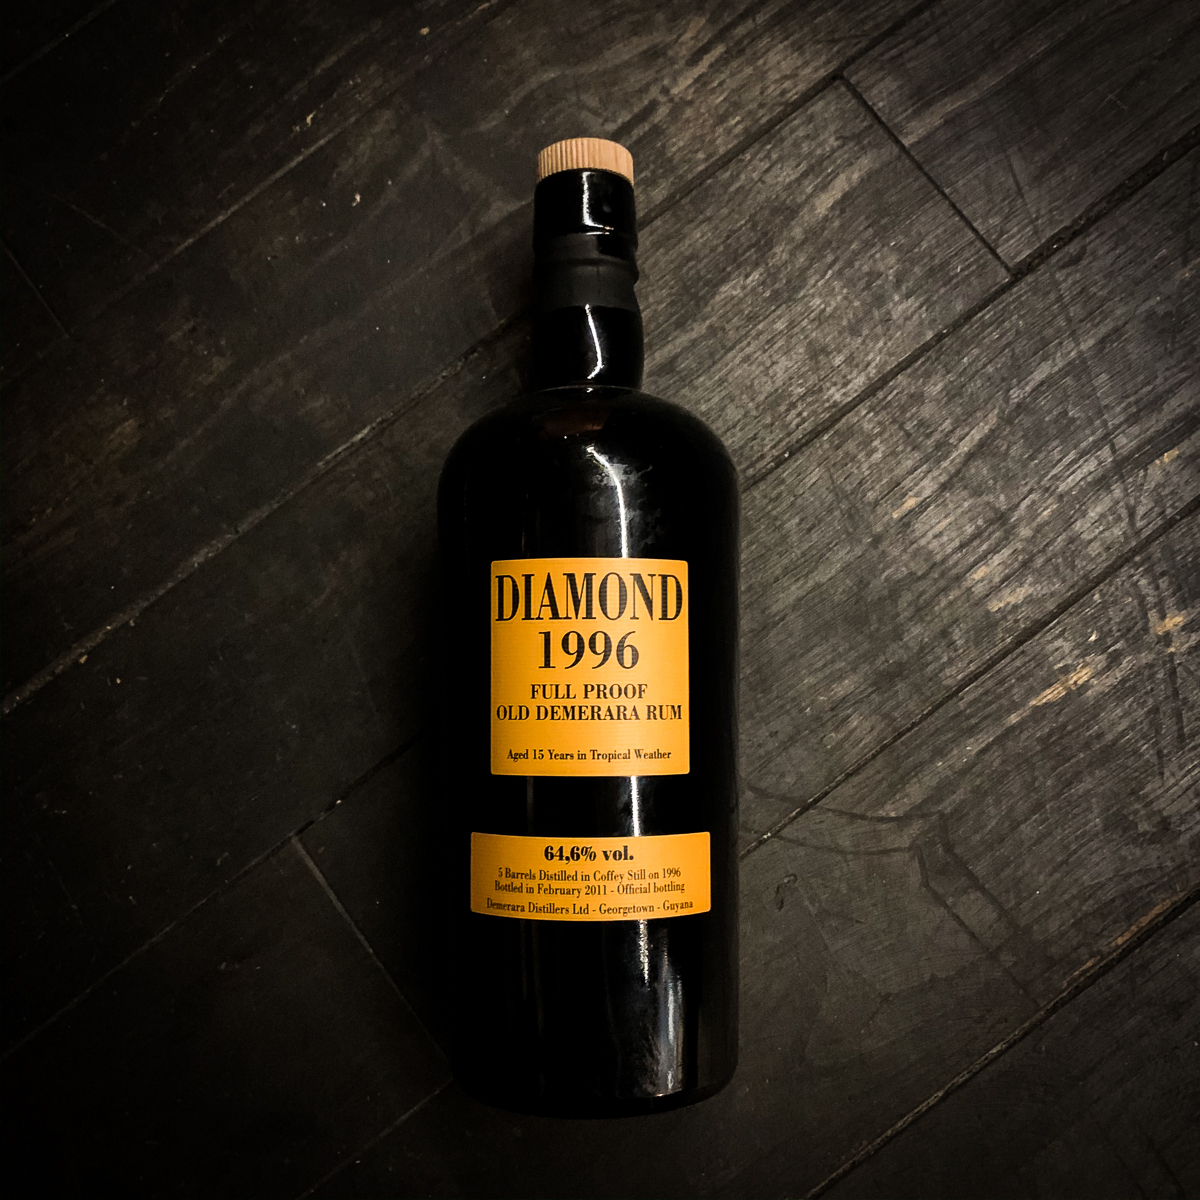 Diamond 1996 Full Proof Demerara Rum, Velier